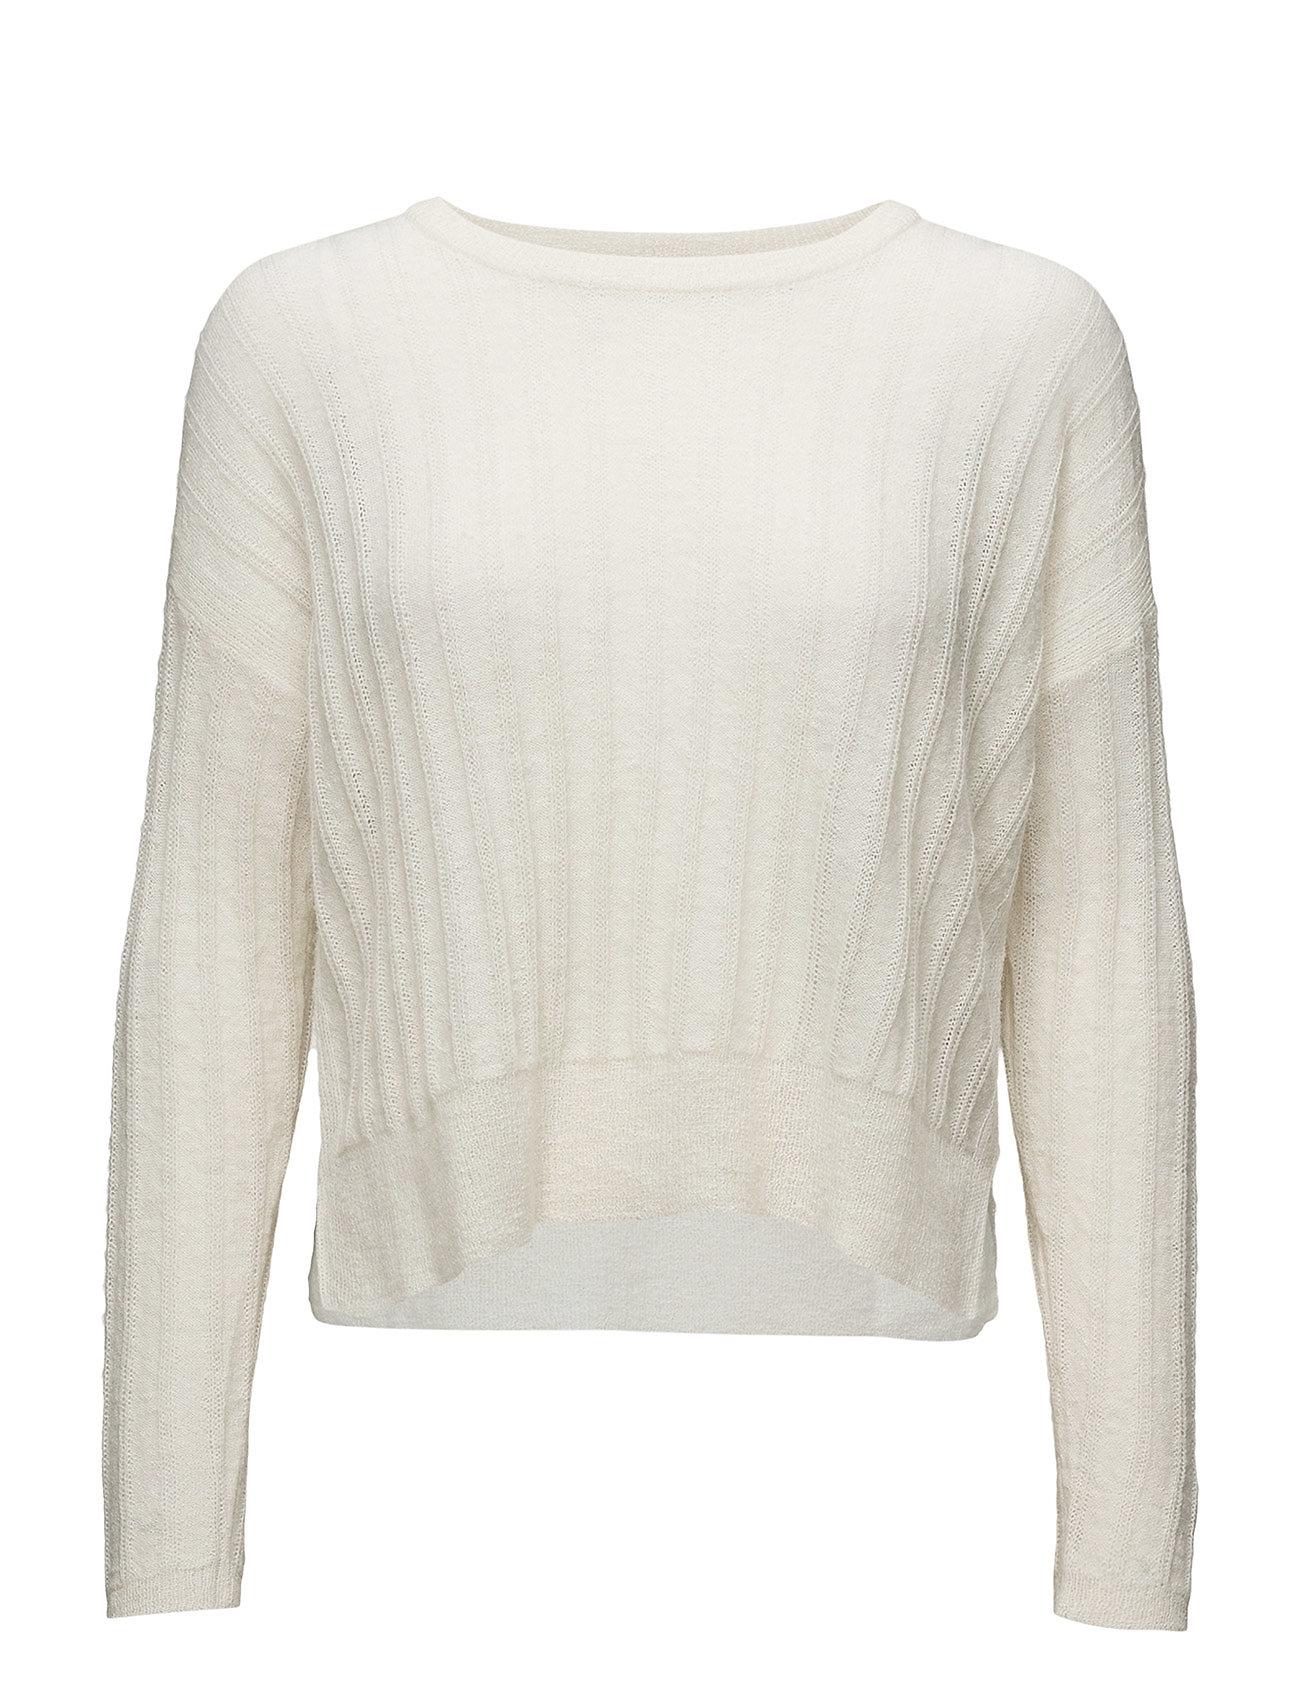 InWear Sincere Pullover KNIT - WHITE SMOKE